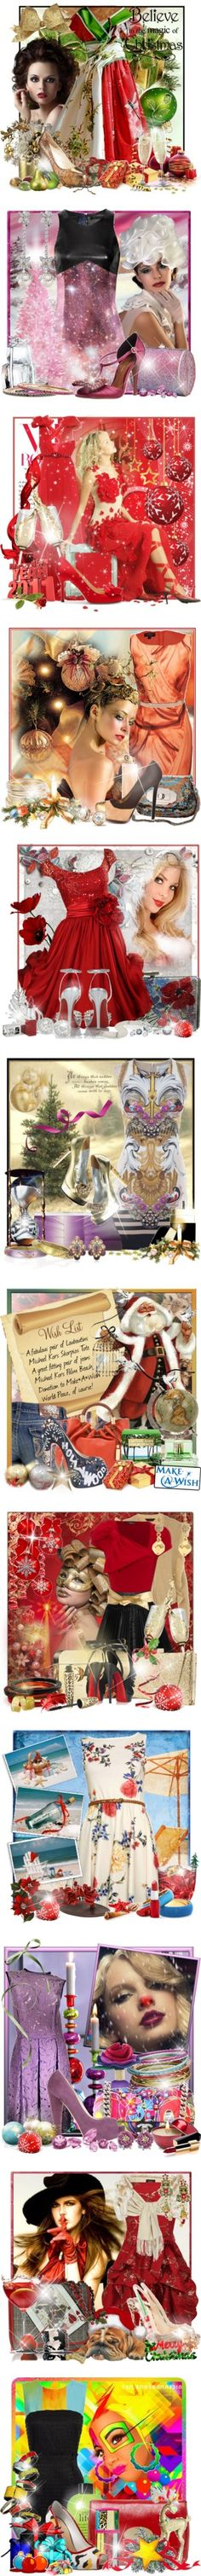 """""""Christmas Past"""" by doozer ❤ liked on Polyvore"""